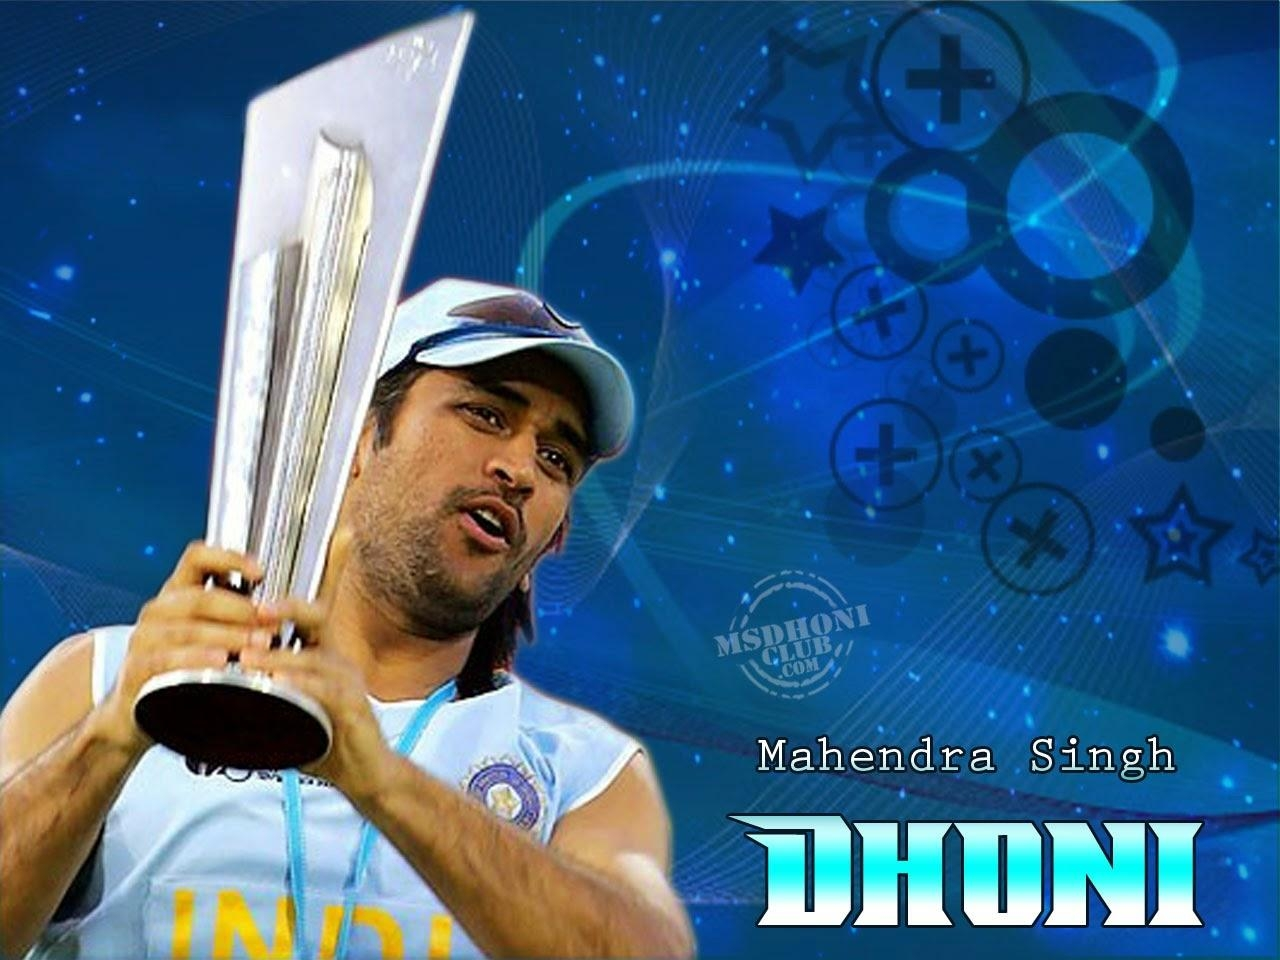 dhoni with worldcup